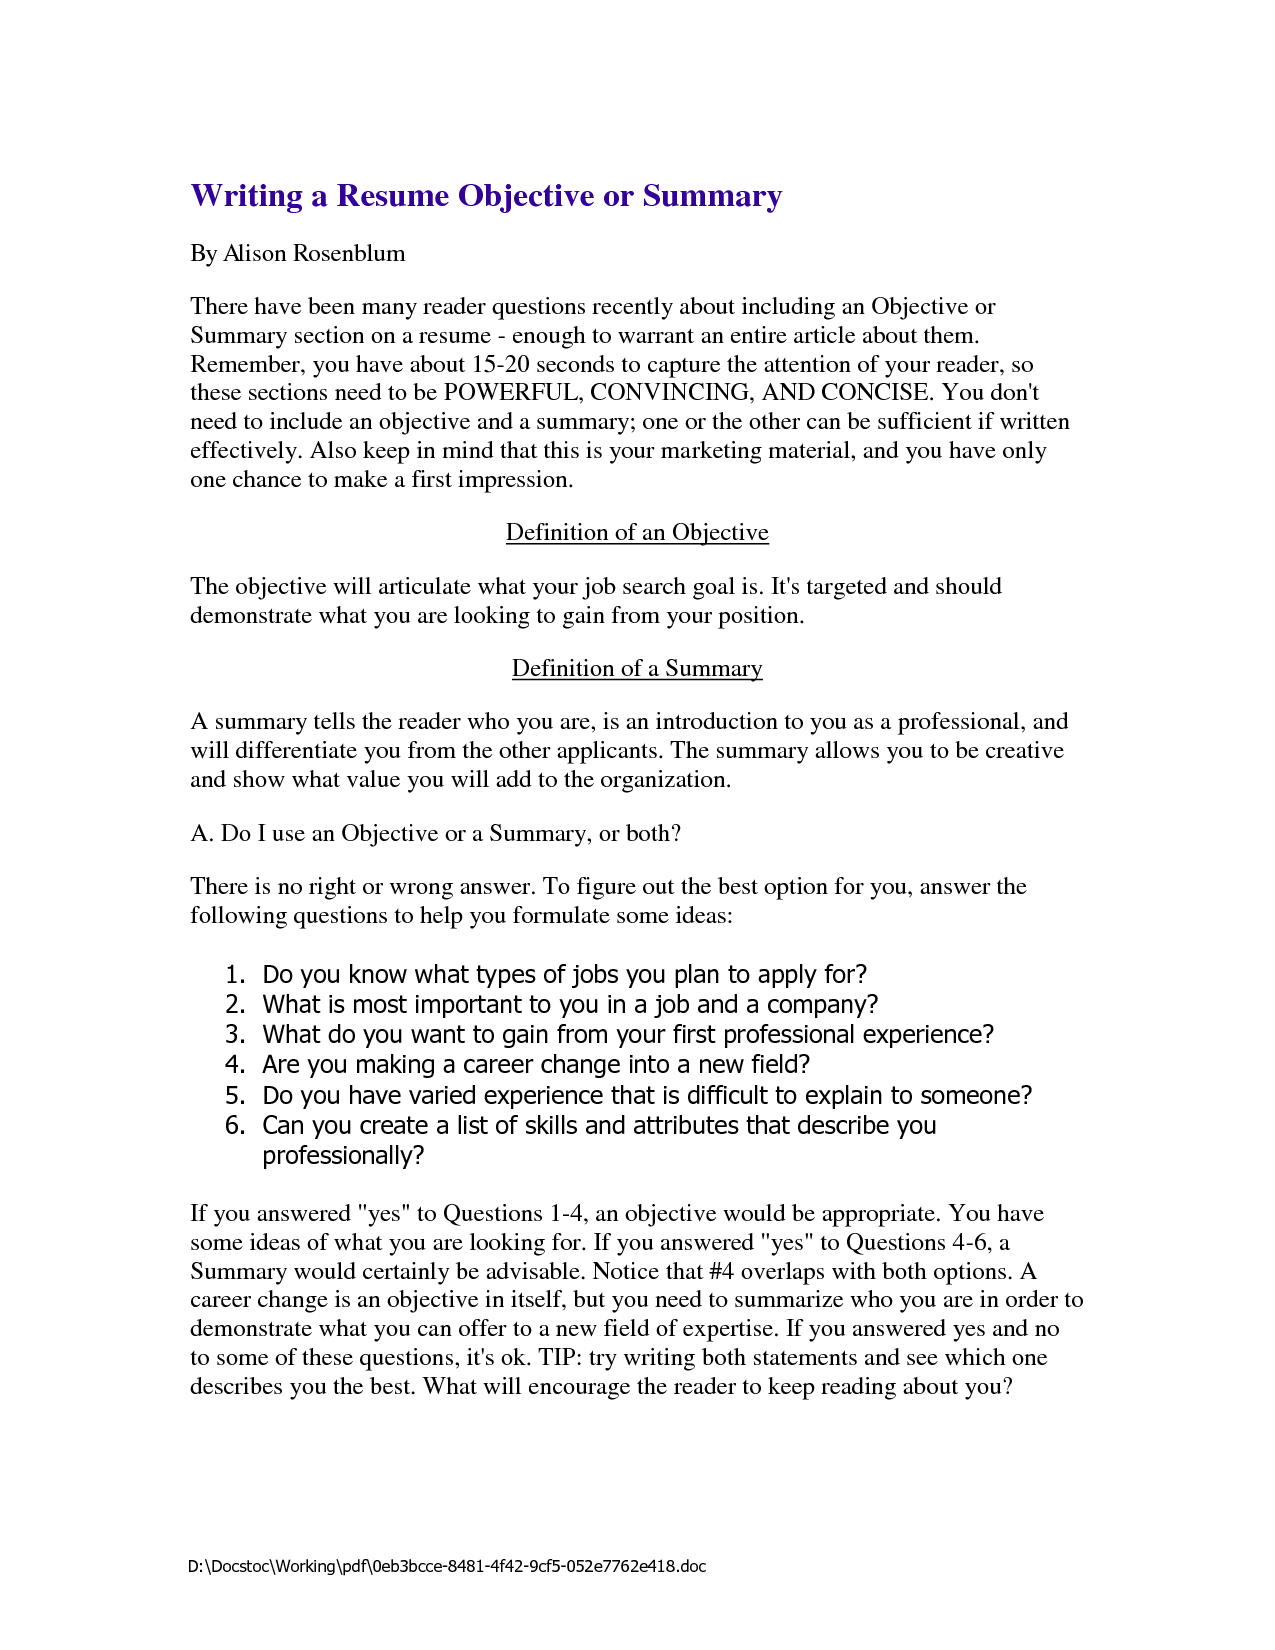 Resume Summary For Writing A Resume Objective Or Summary